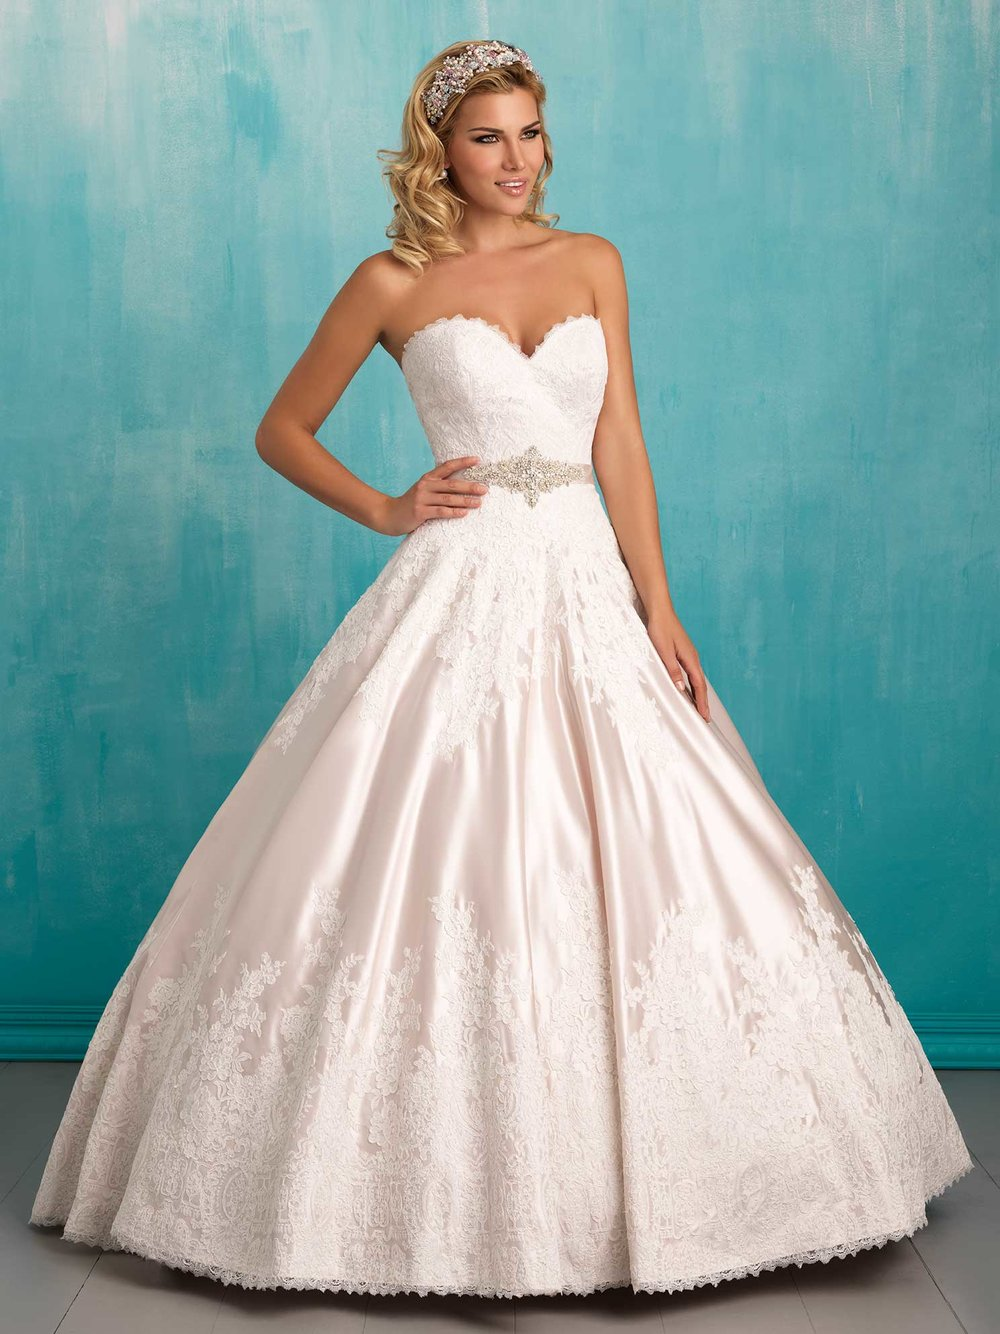 Sweetheart satin bridal ballgown